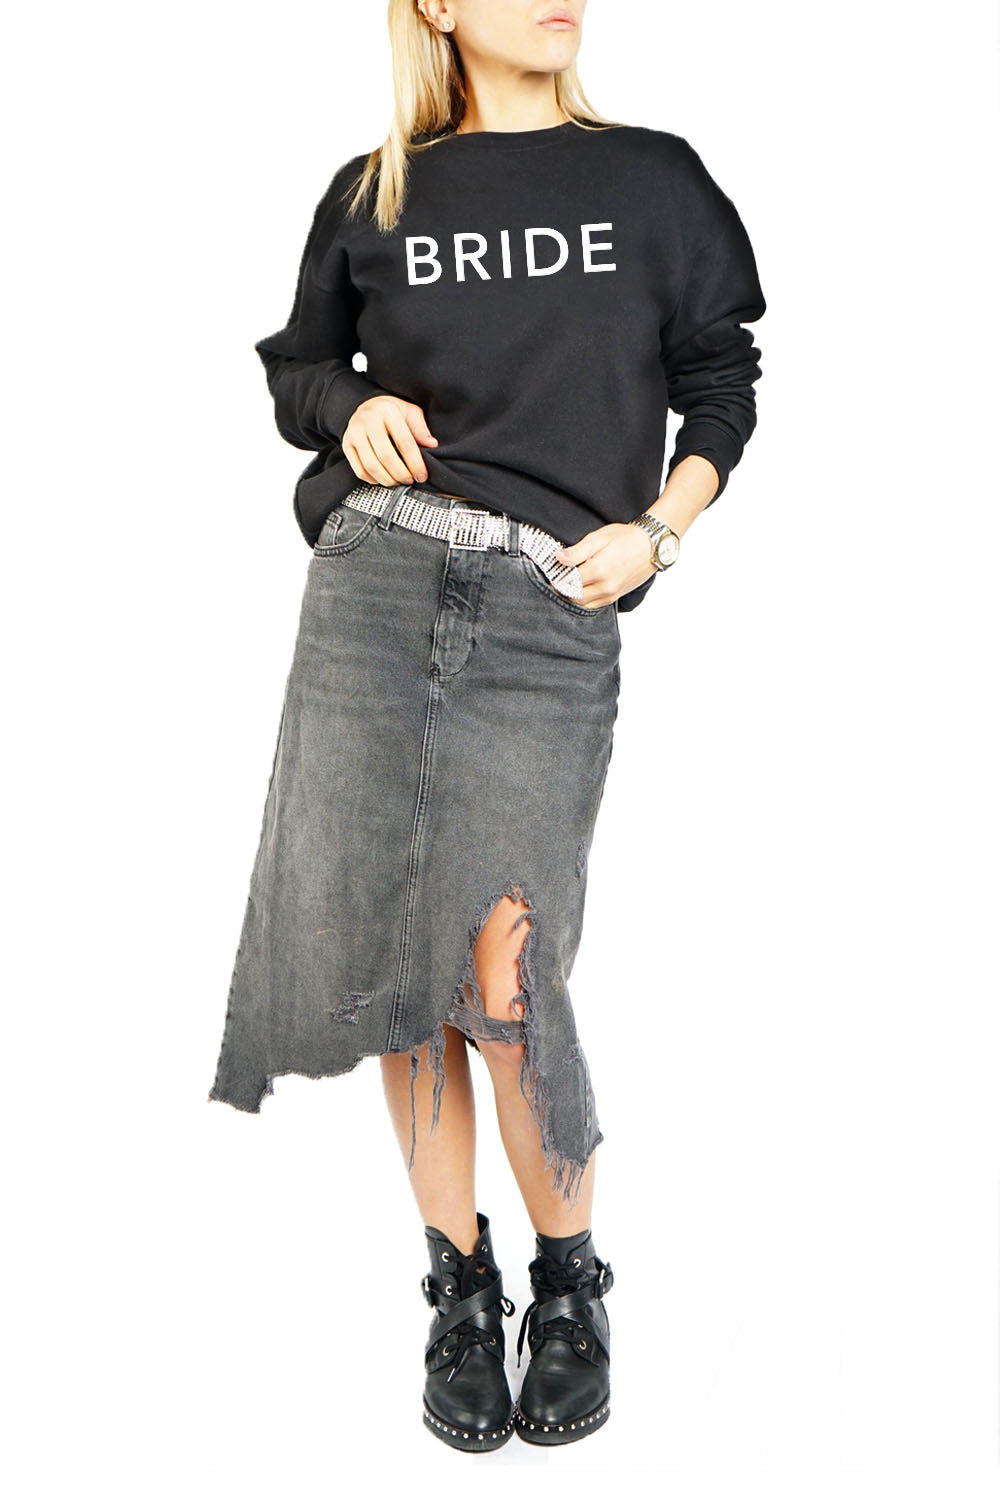 Women's Crewneck - Bride